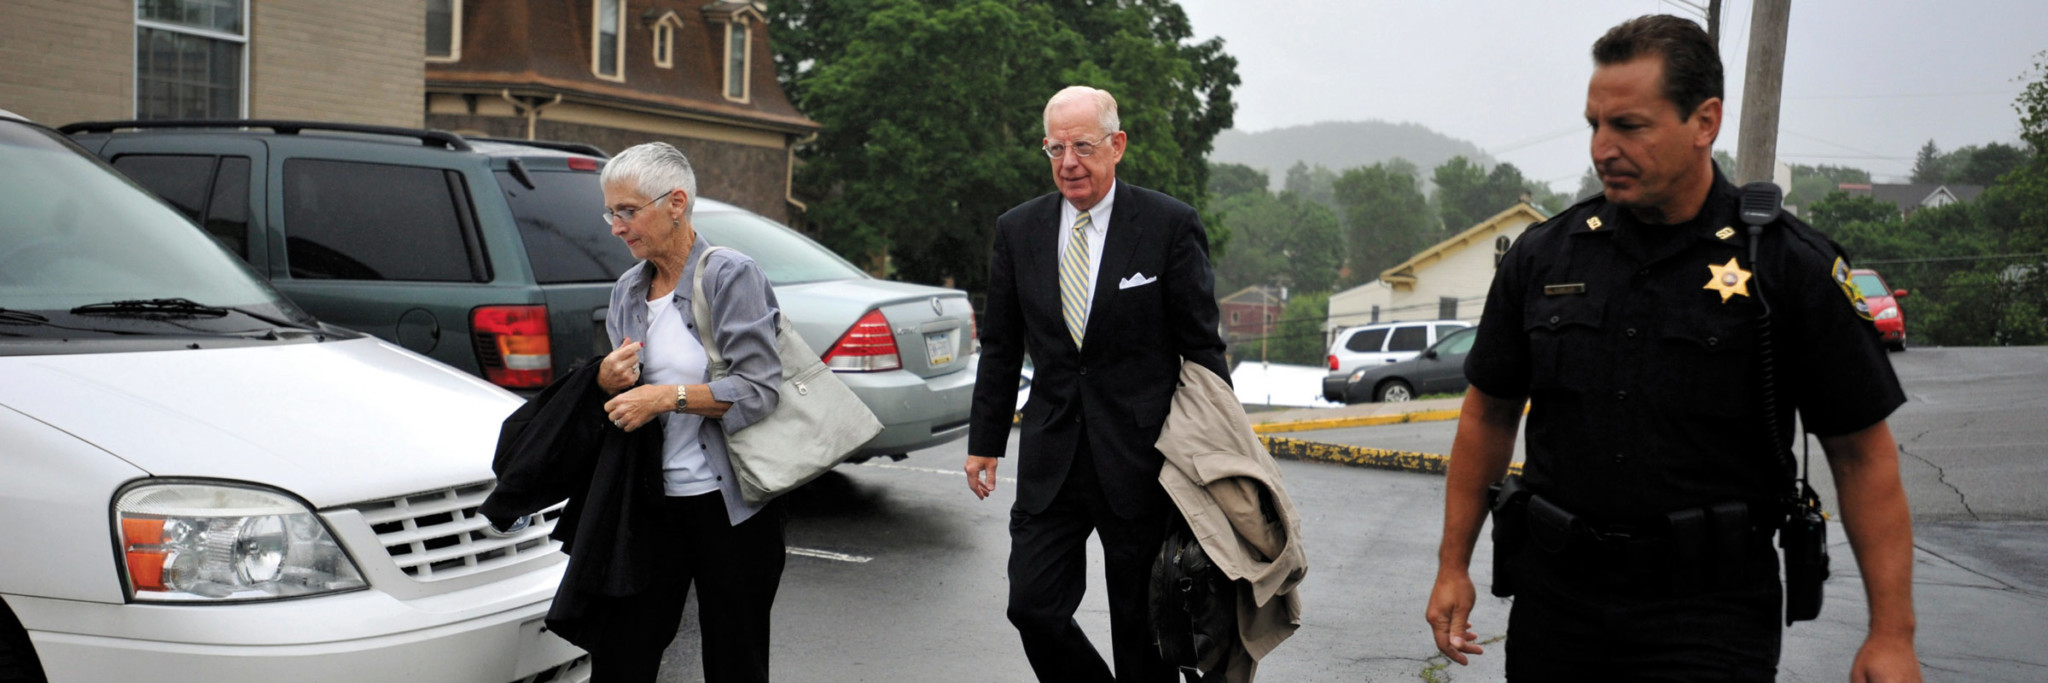 Cleland arrives at the courthouse for the jury selection in the child sex abuse trial of the former Penn State Assistant Football Coach Jerry Sandusky.